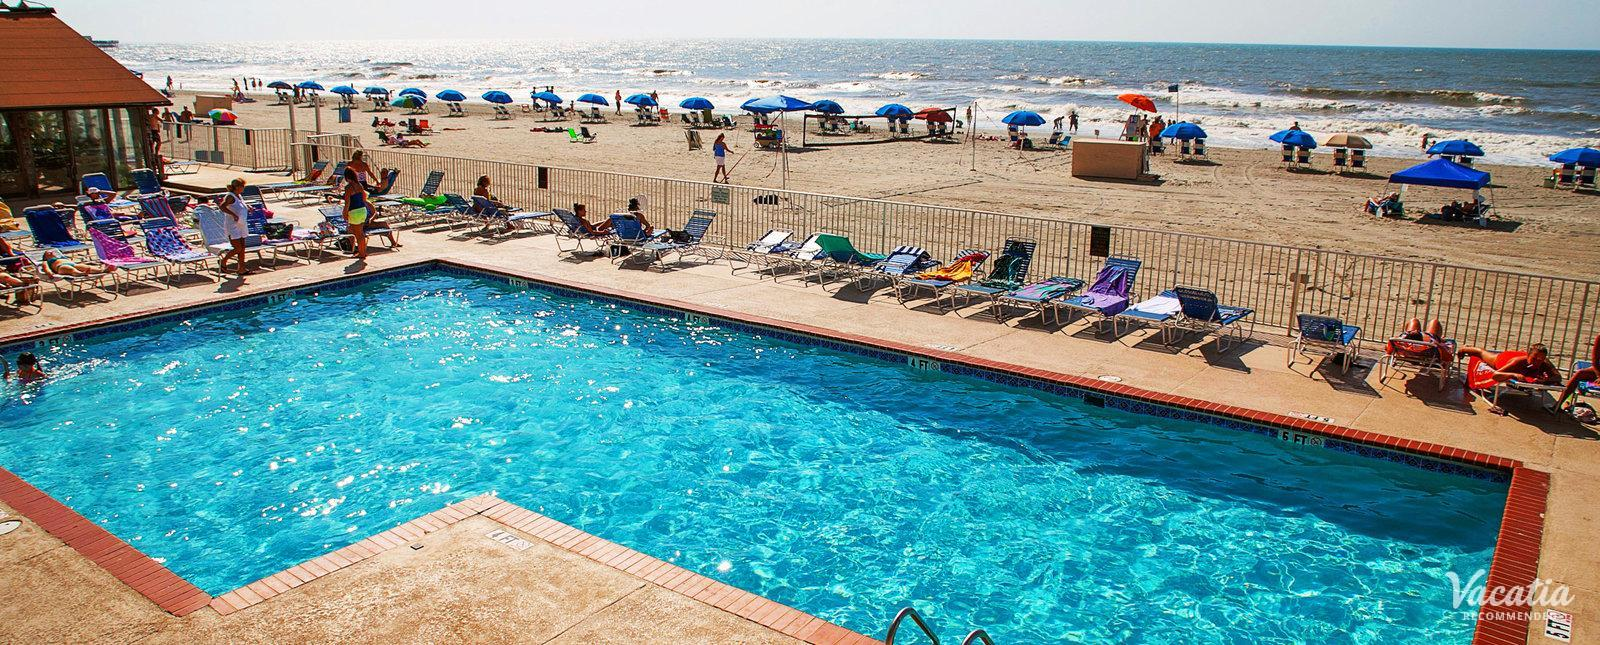 Sands Ocean Club Pool